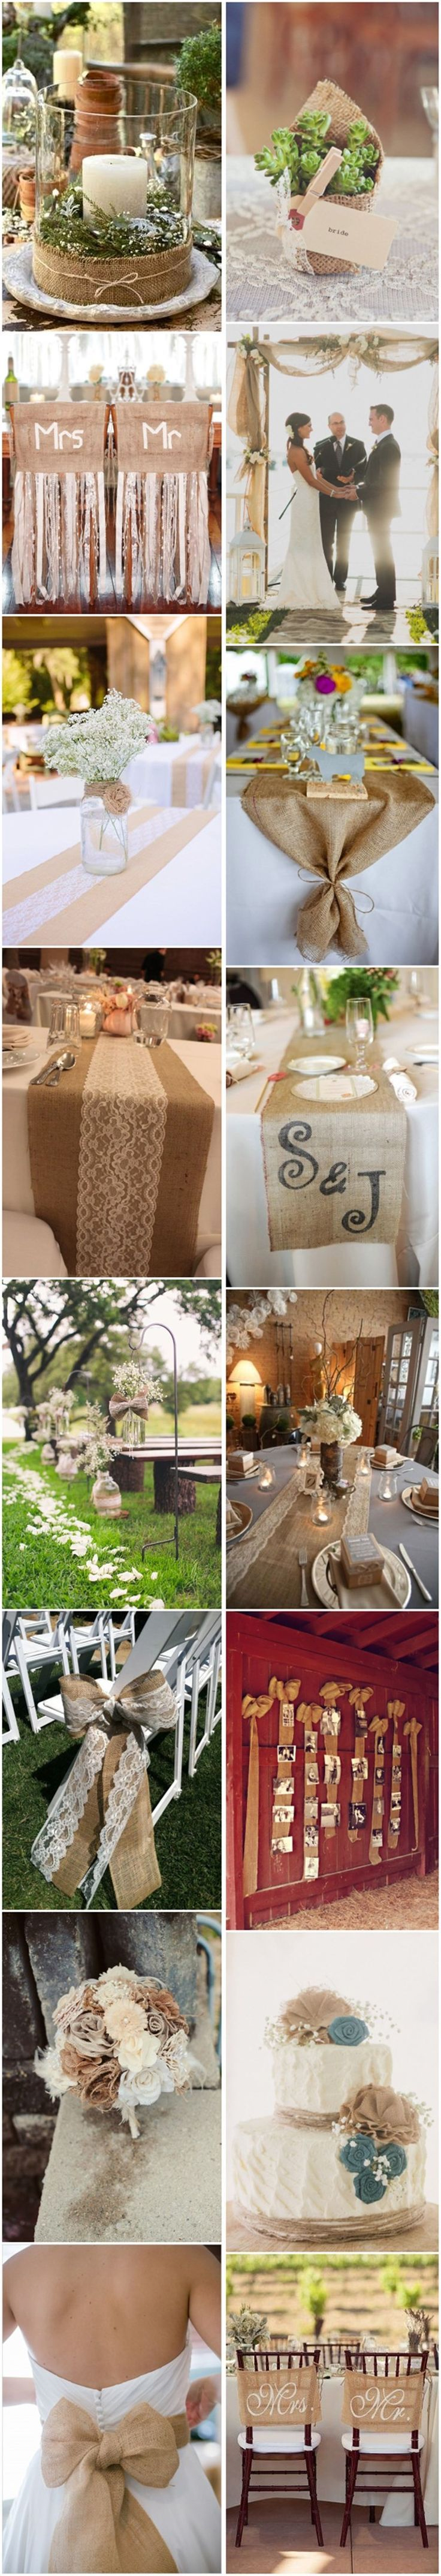 50+ rustic wedding ideas - burlap and lace wedding ideas